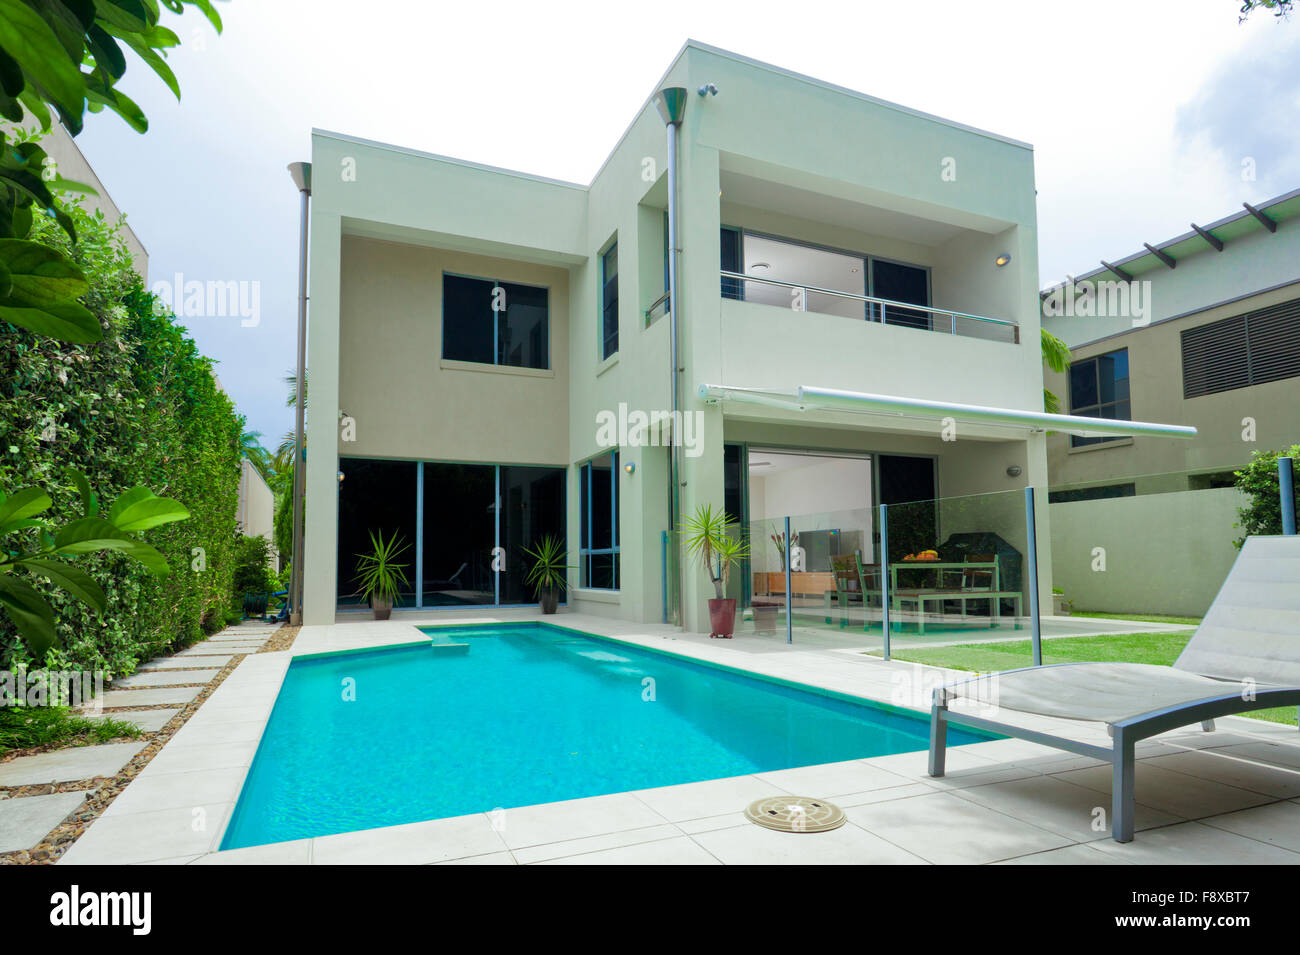 Luxurious Modern House With Swimming Pool And Backyard Stock Photo Alamy